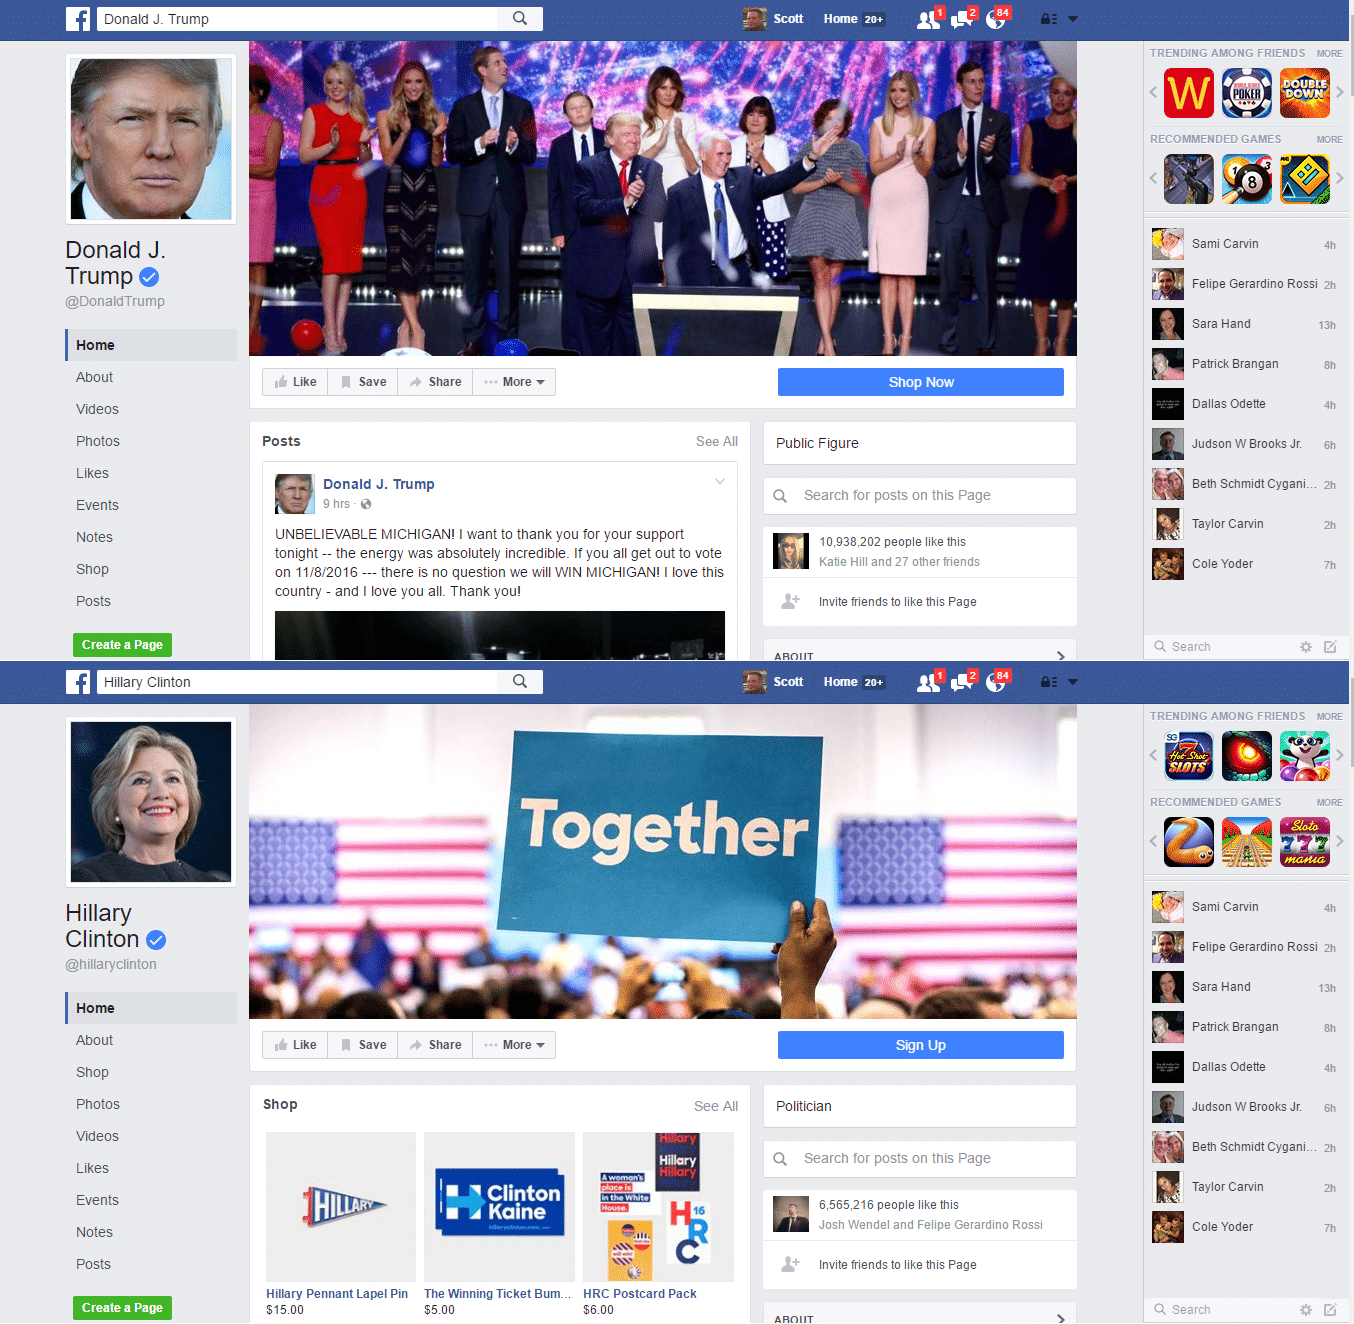 Trump / Clinton FaceBook Comparison